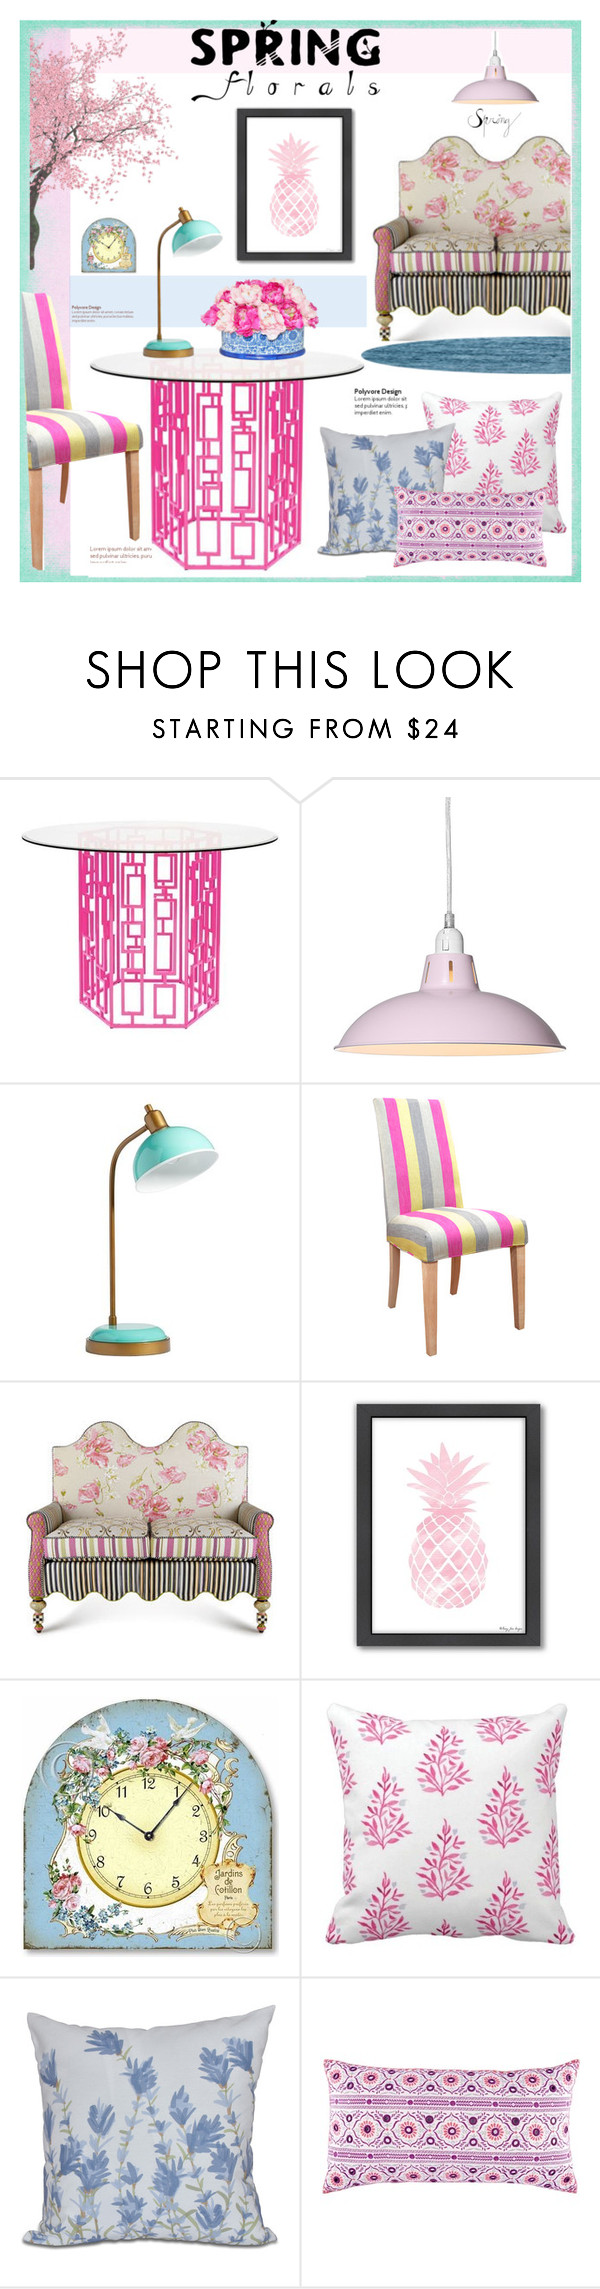 """""""Spring Florals"""" by patrizia-brasil ❤ liked on Polyvore featuring interior, interiors, interior design, home, home decor, interior decorating, PBteen, Multiyork, MacKenzie-Childs and Americanflat"""